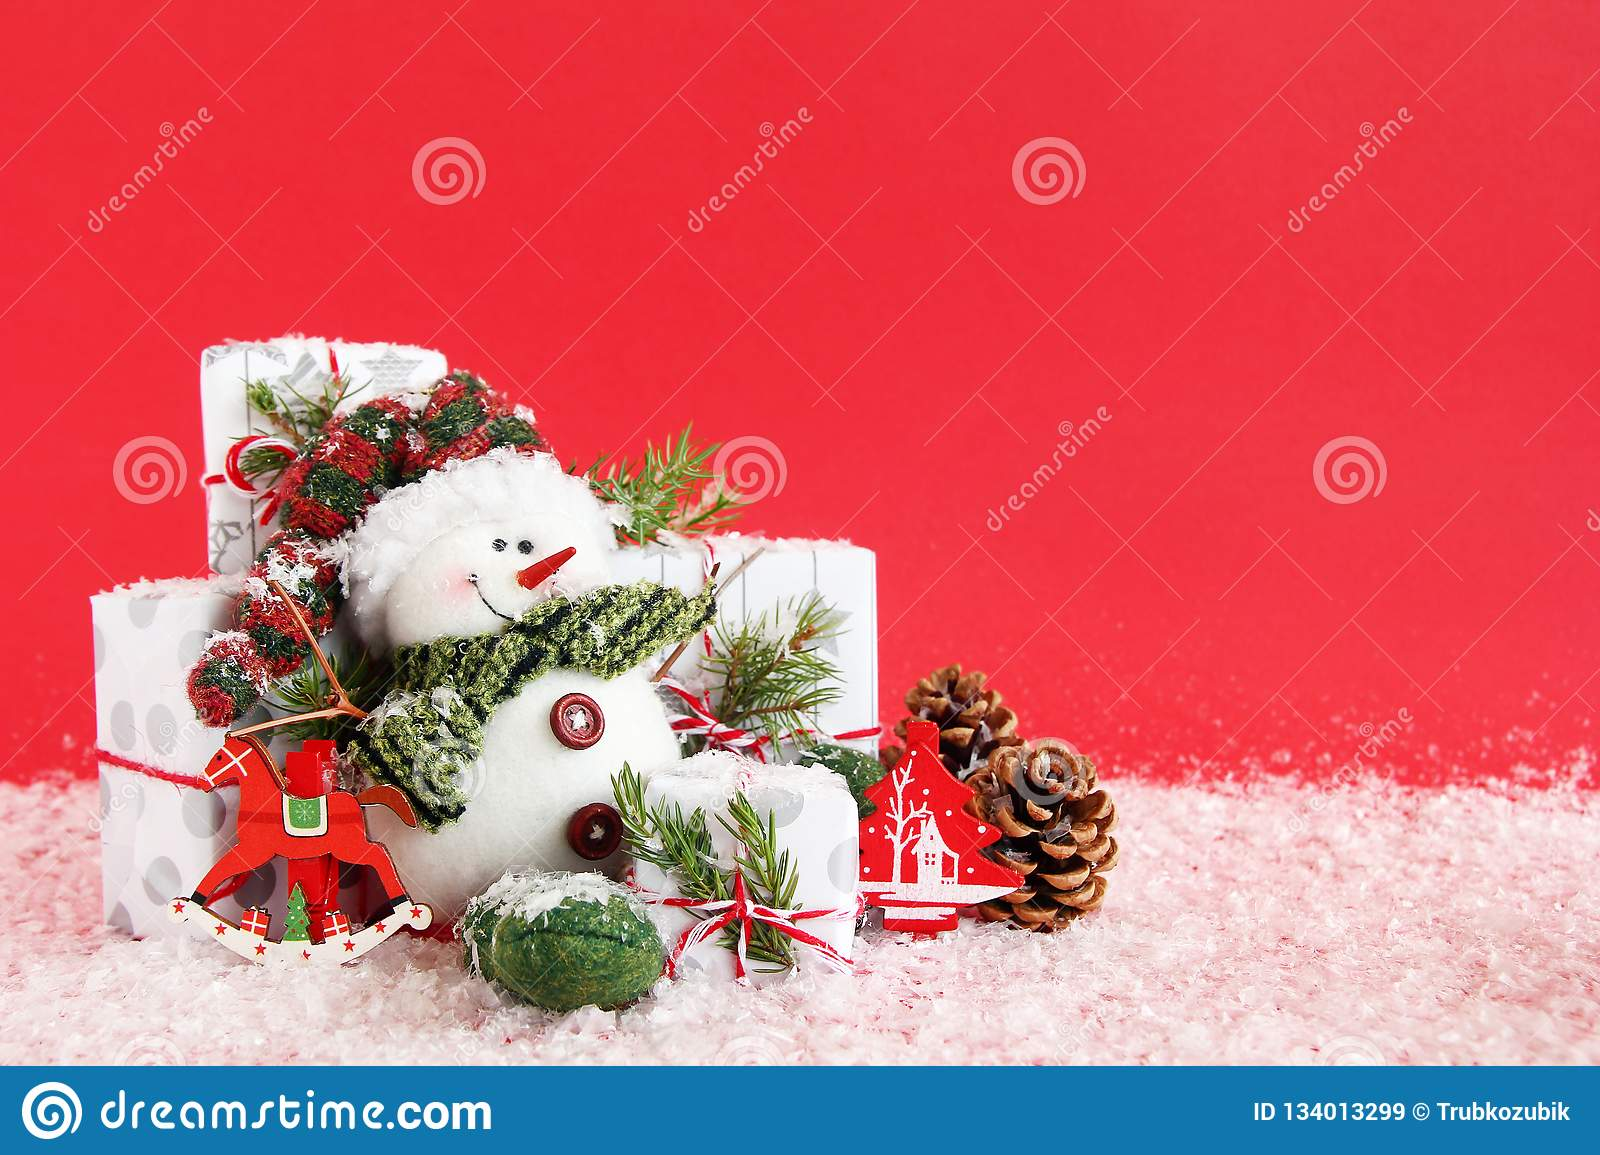 Christmas Still Life With Snowman And Gift Boxes On A Red Background